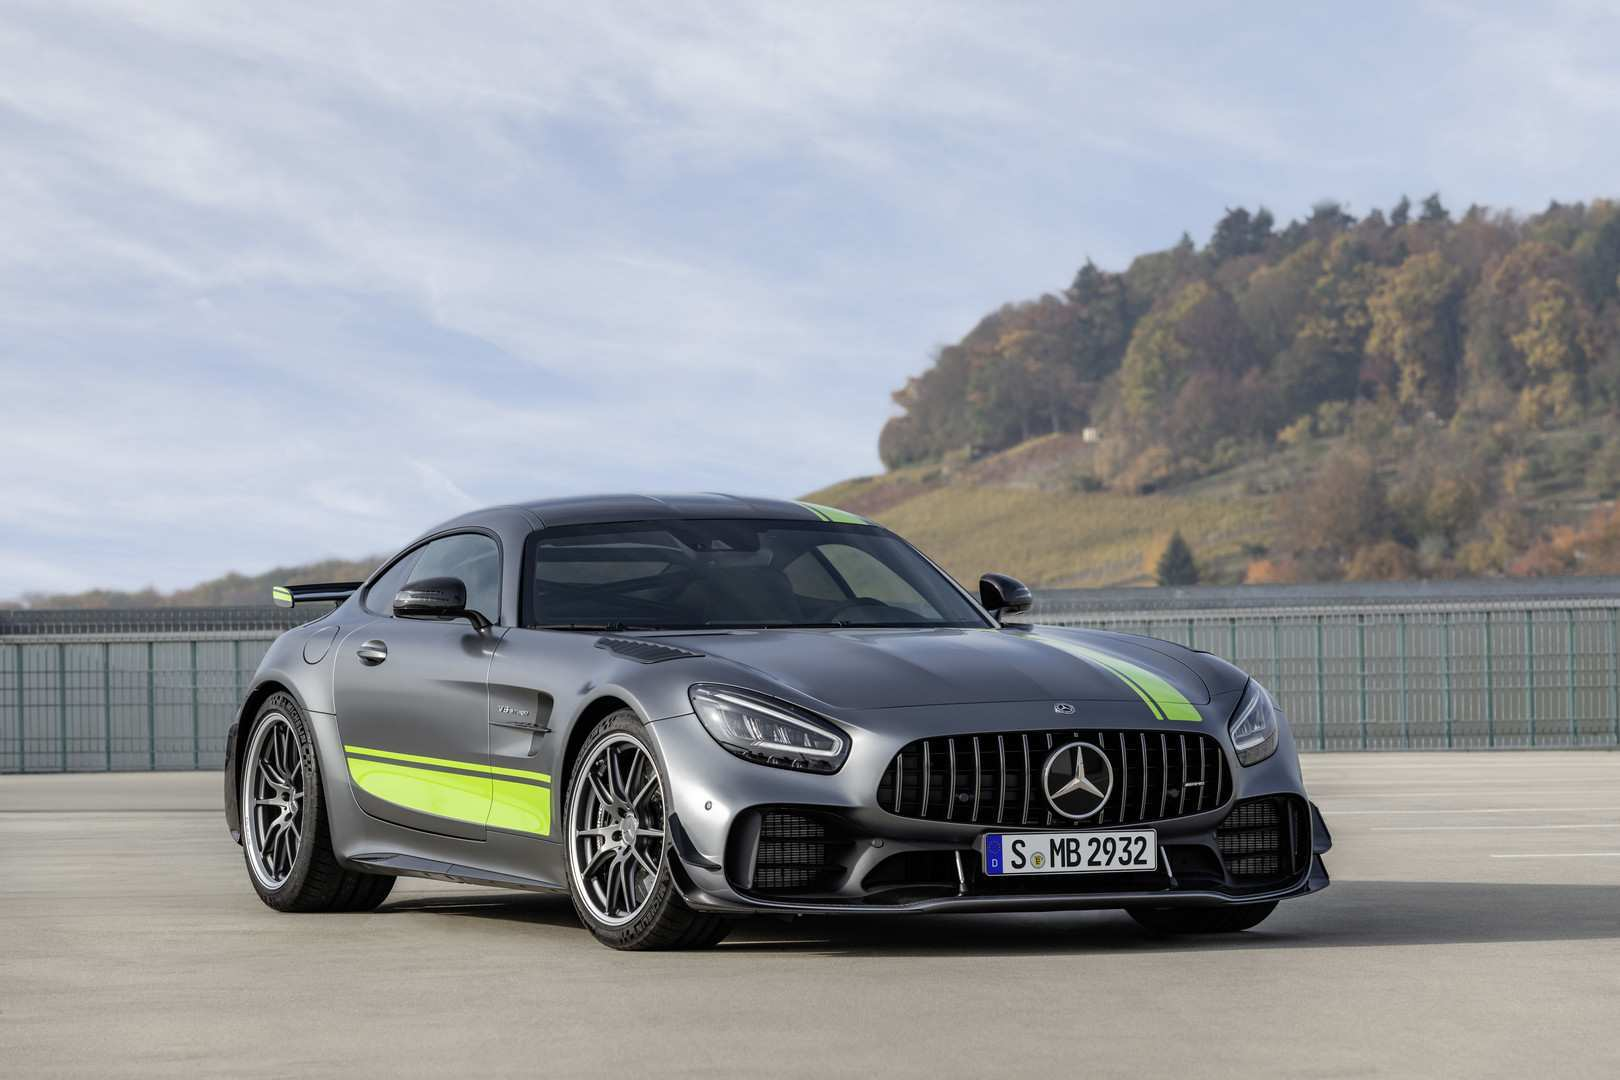 70 The Best Mercedes Gt 2019 Price And Release Date